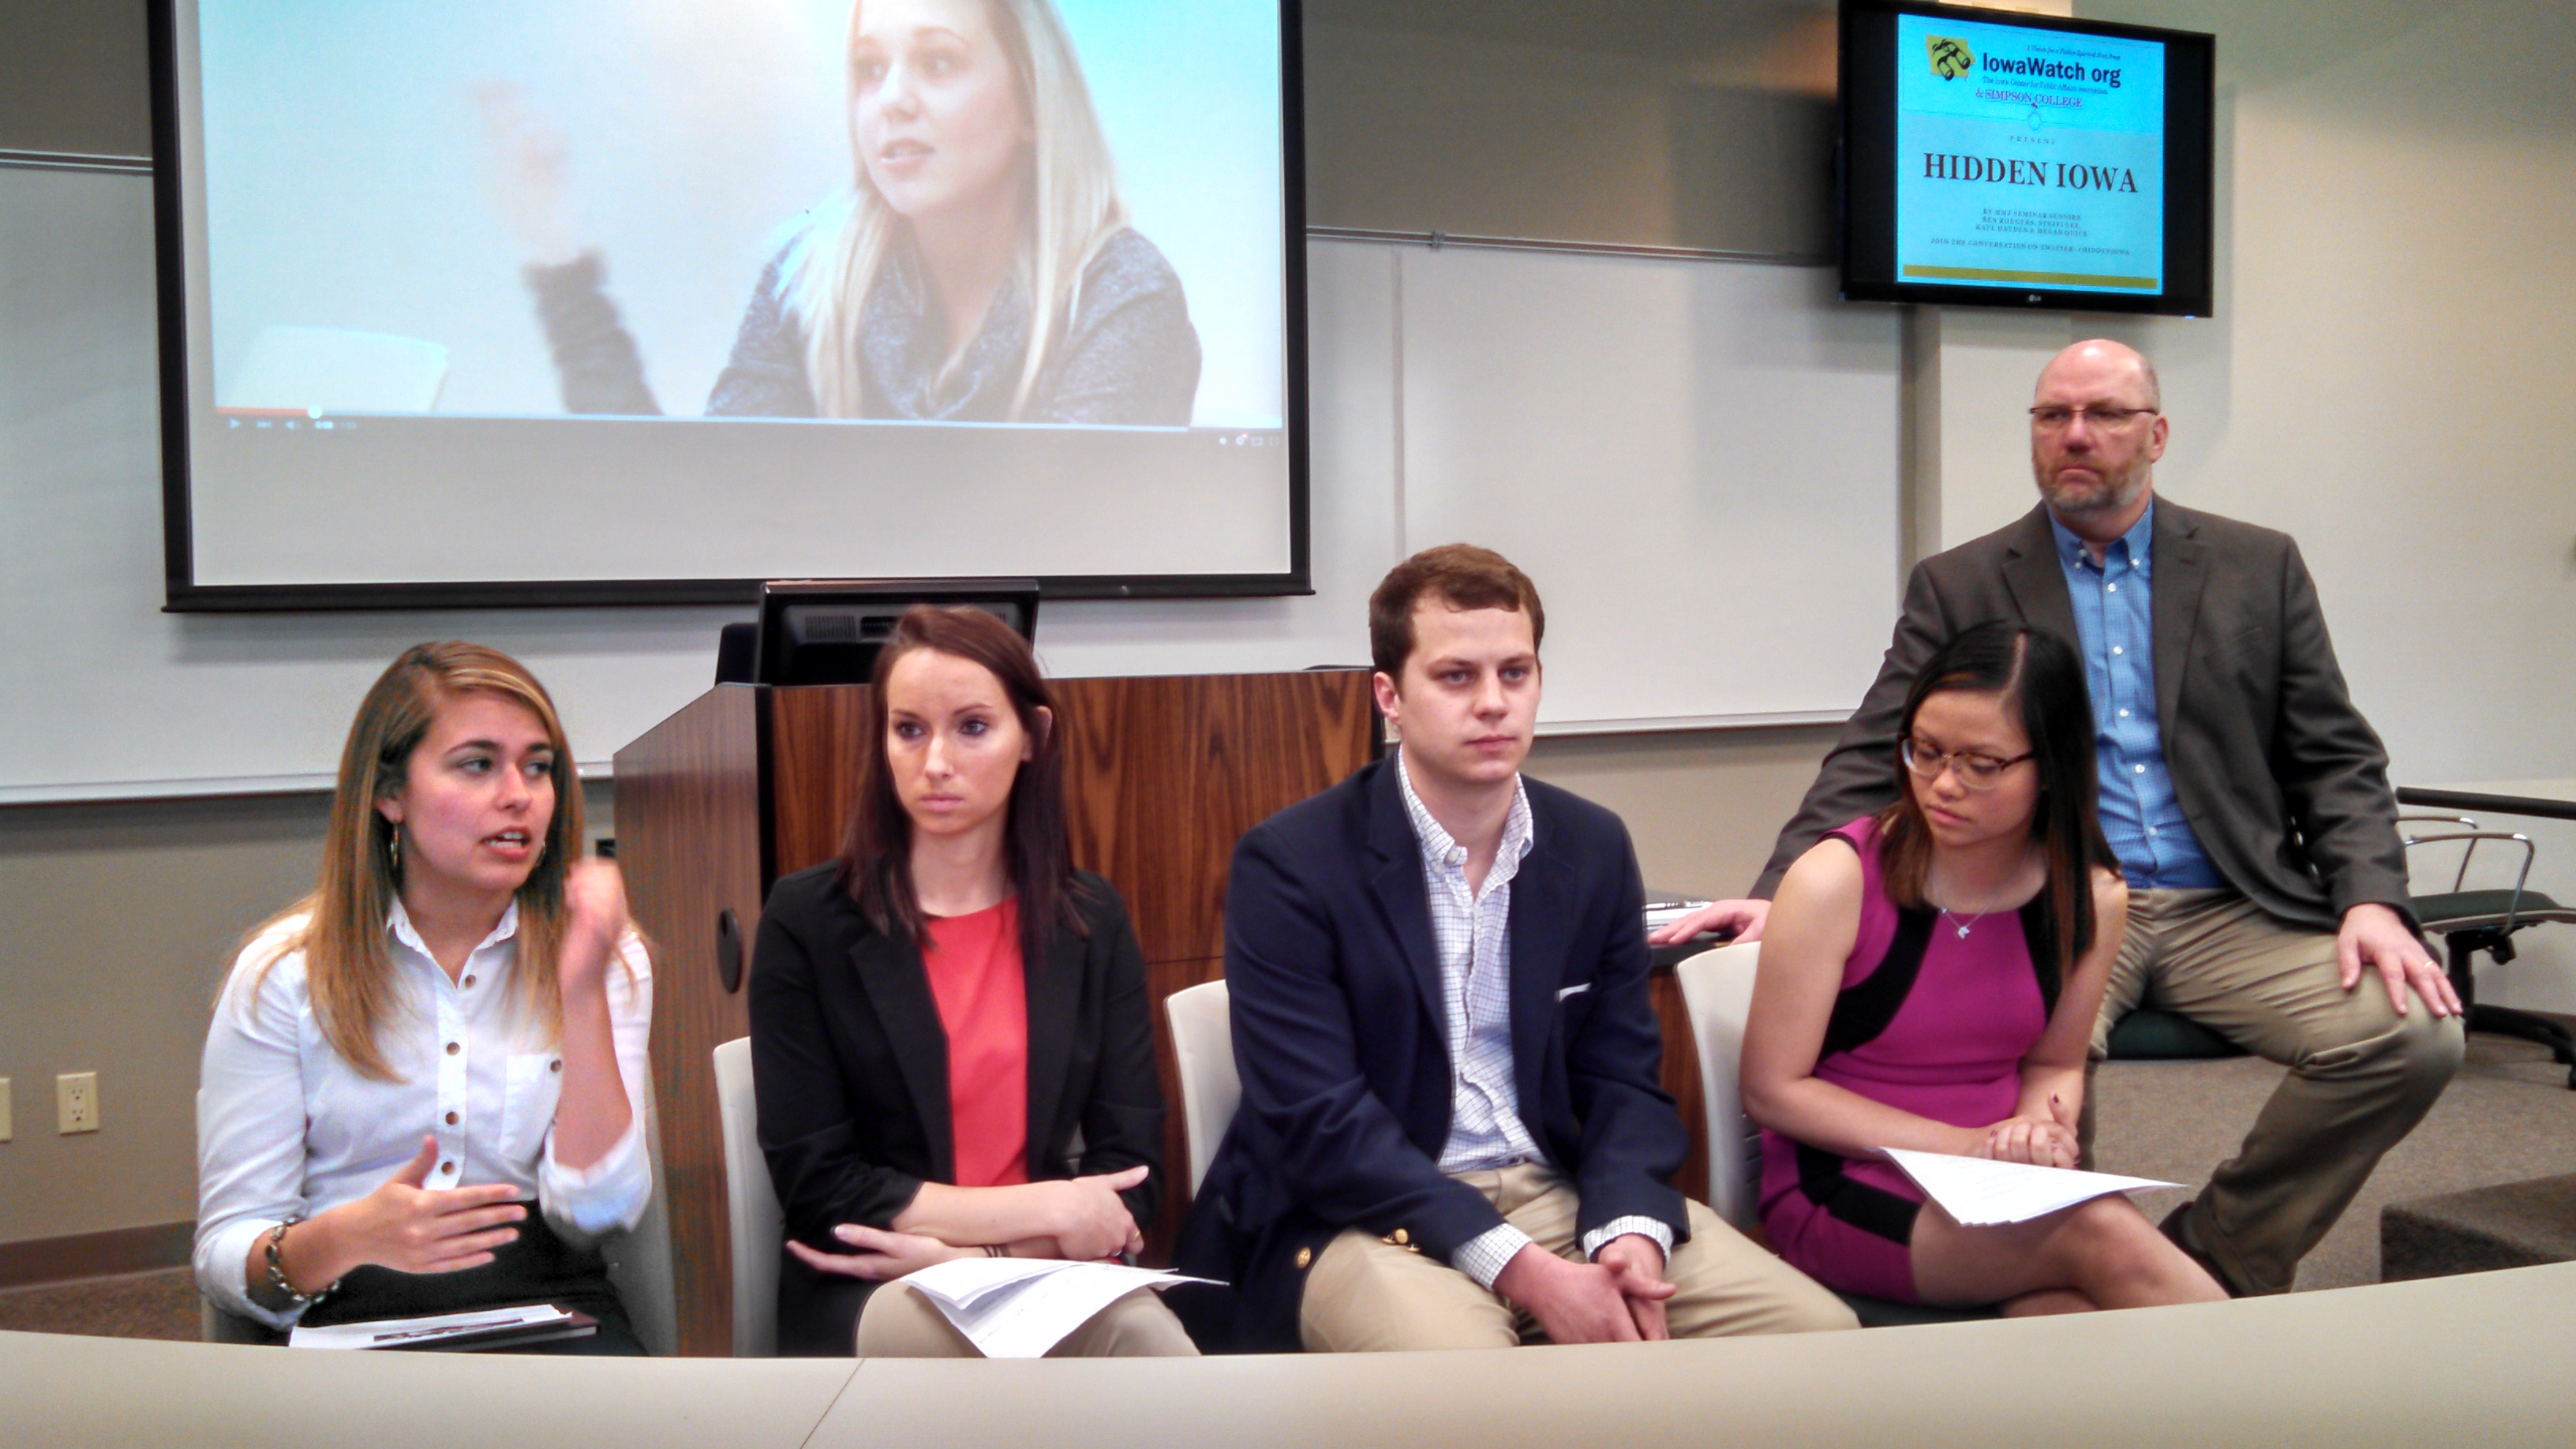 Journalism students at Simpson College produced an IowaWatch series on Hidden Illnesses on Campus and hosted a forum in Indianola in April.